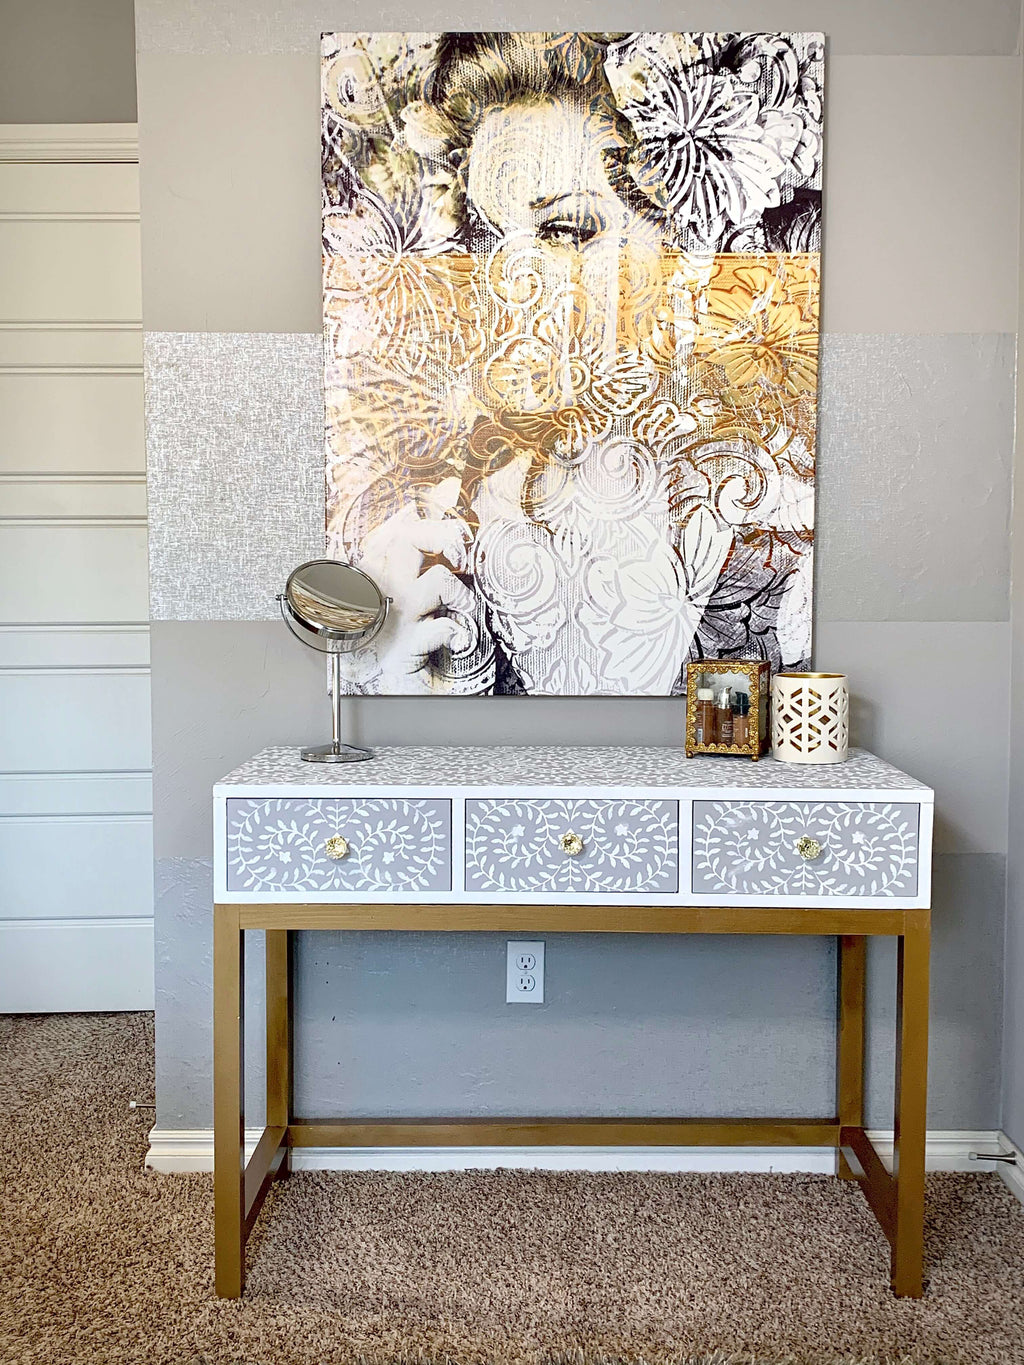 DIY Makeup Vanity Desk featuring a stenciled design and golden desk base underneath an Oliver Gal art piece